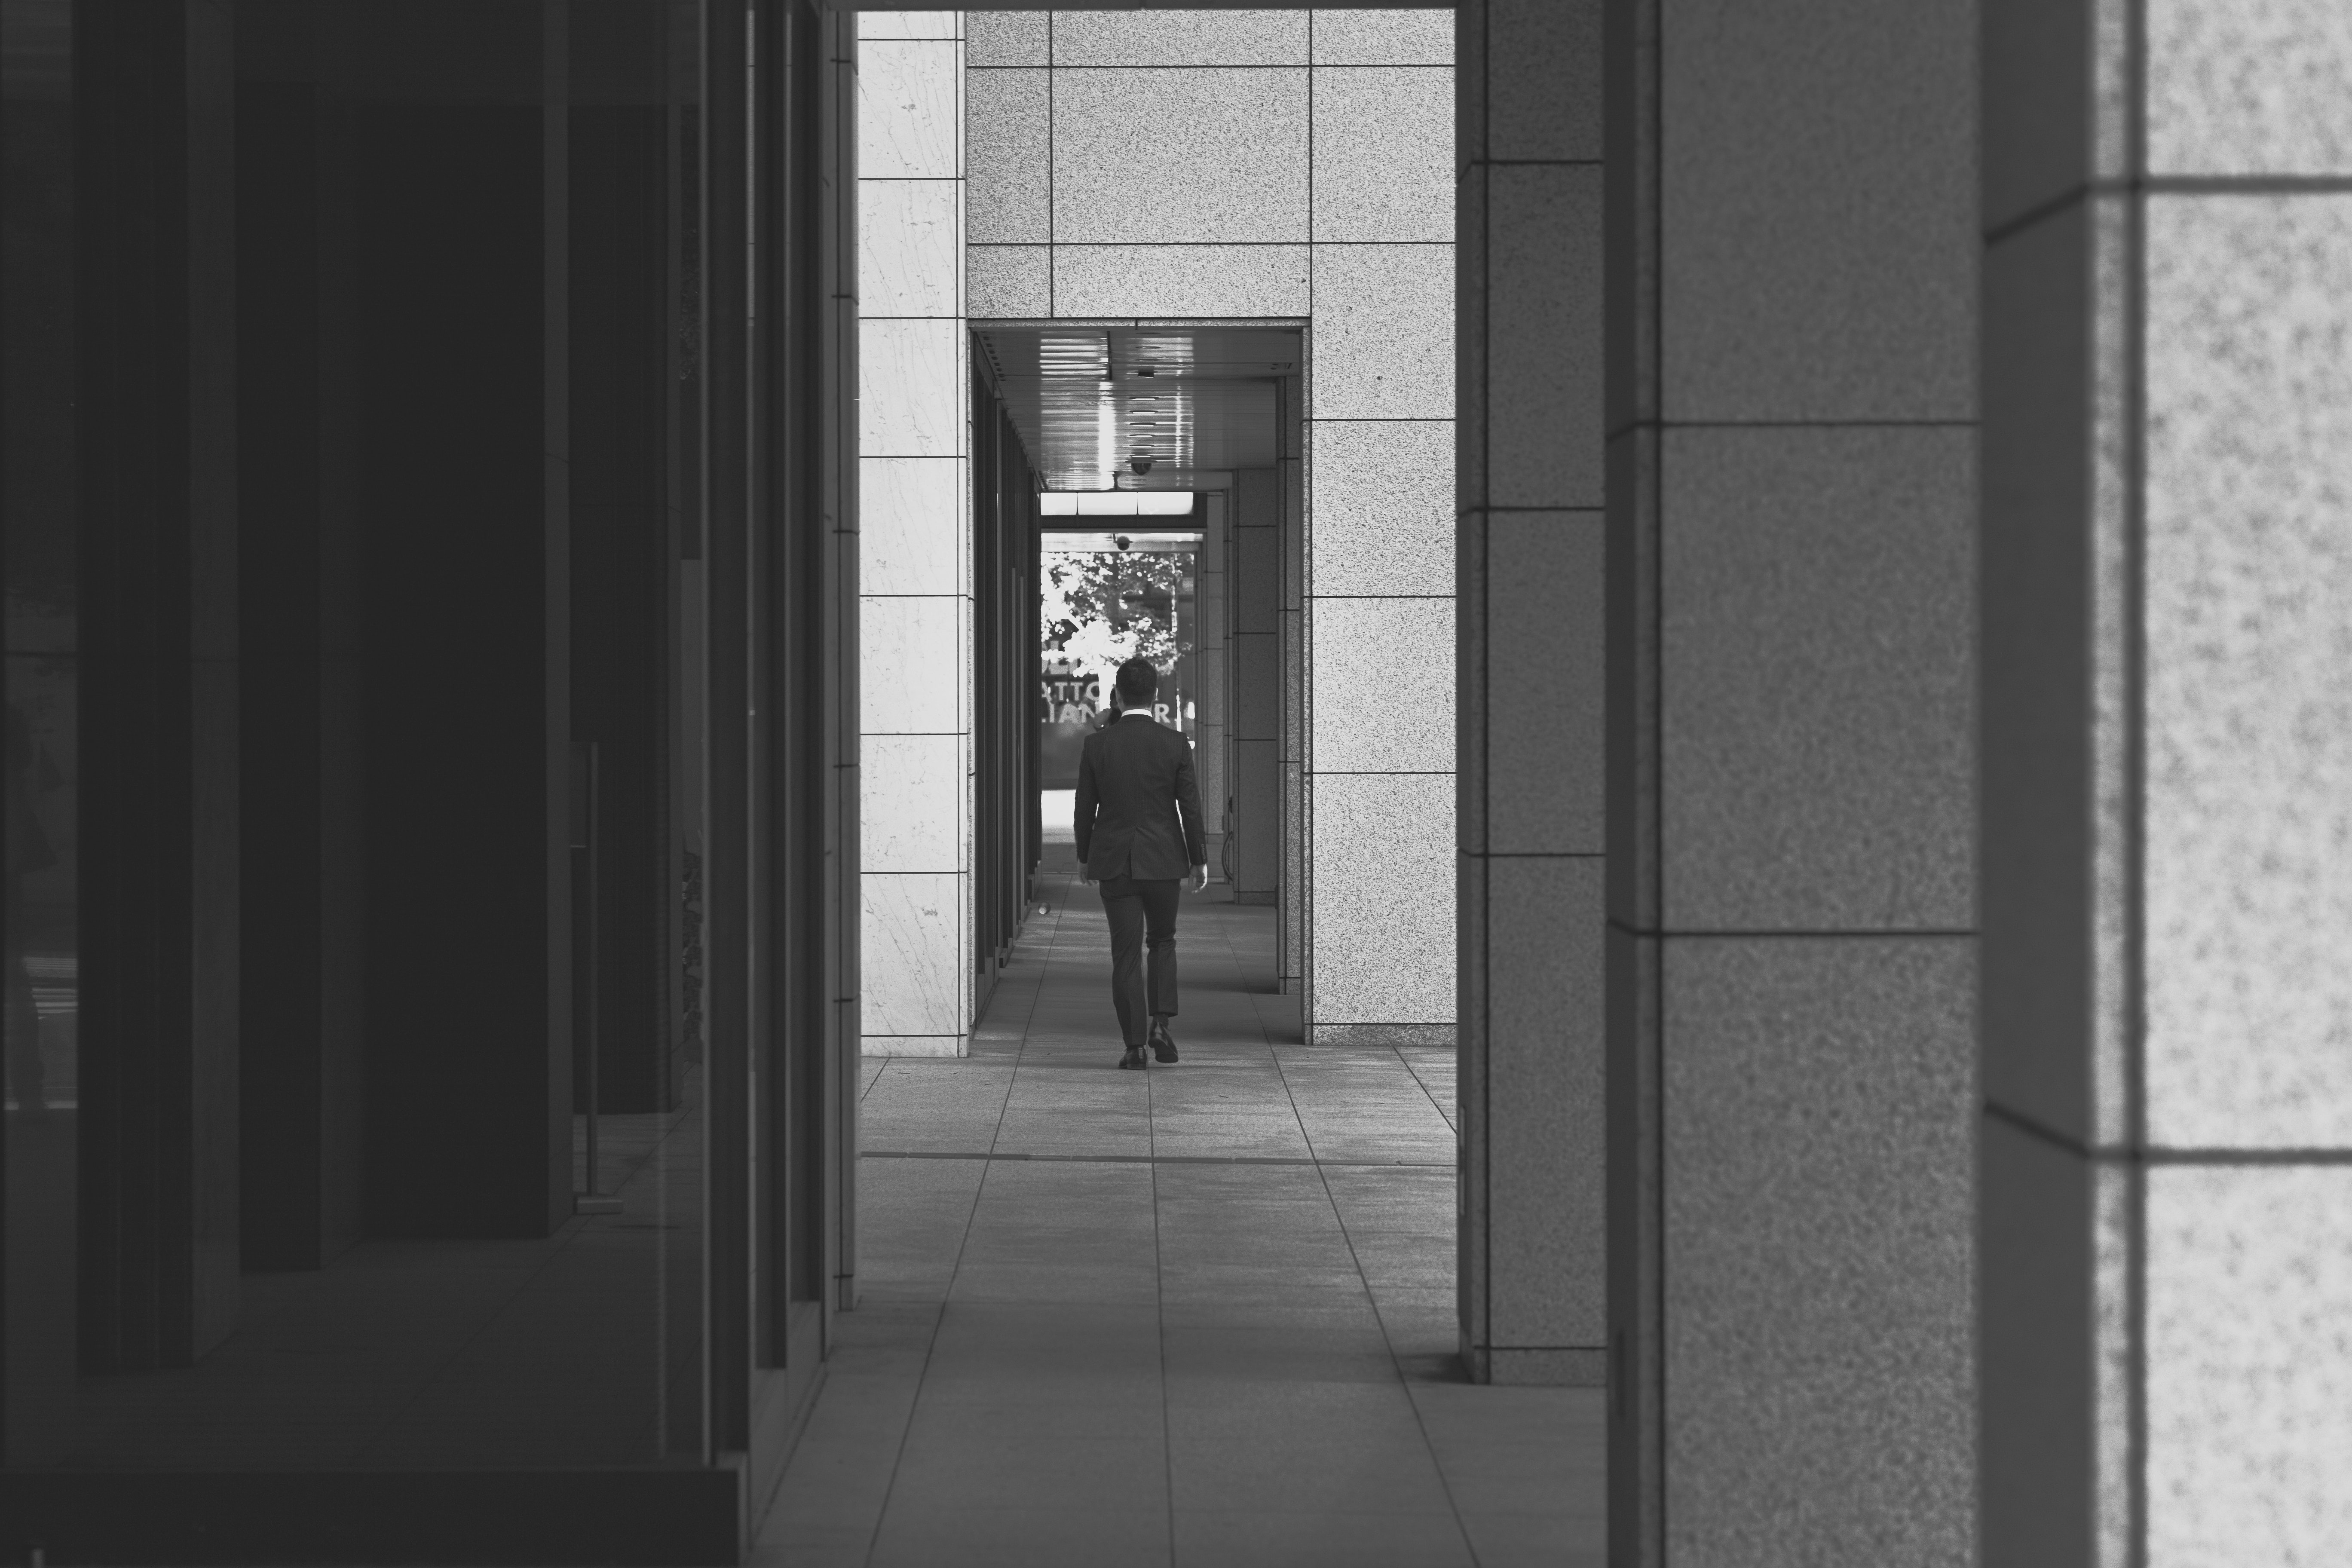 Black and white shot of person walking through outdoor corporate building hallway in suit